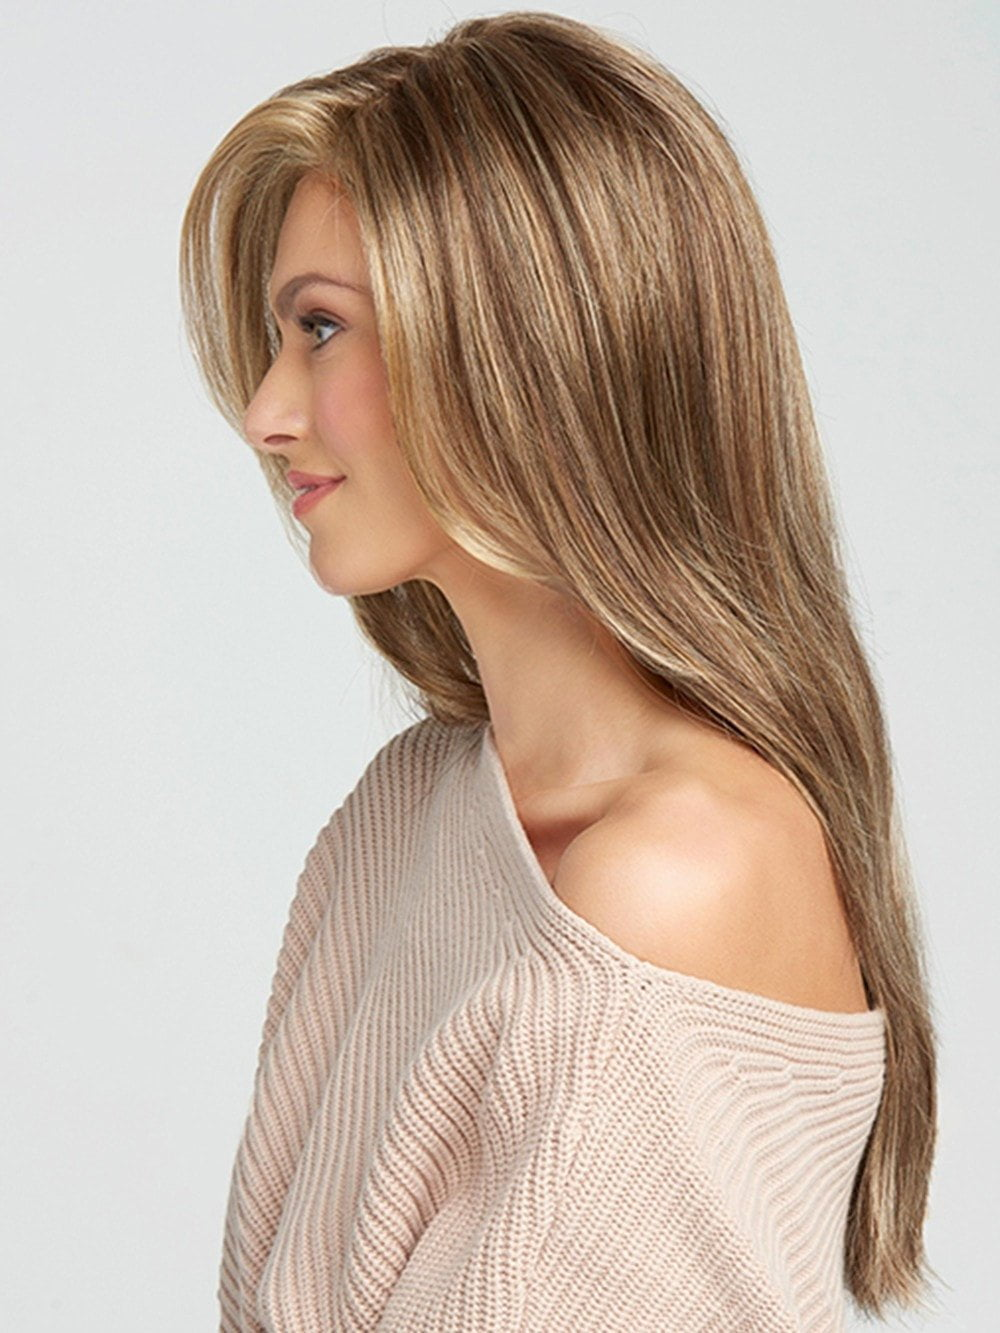 Beautiful long layers that fall to mid-back to create this full, flowing silhouette